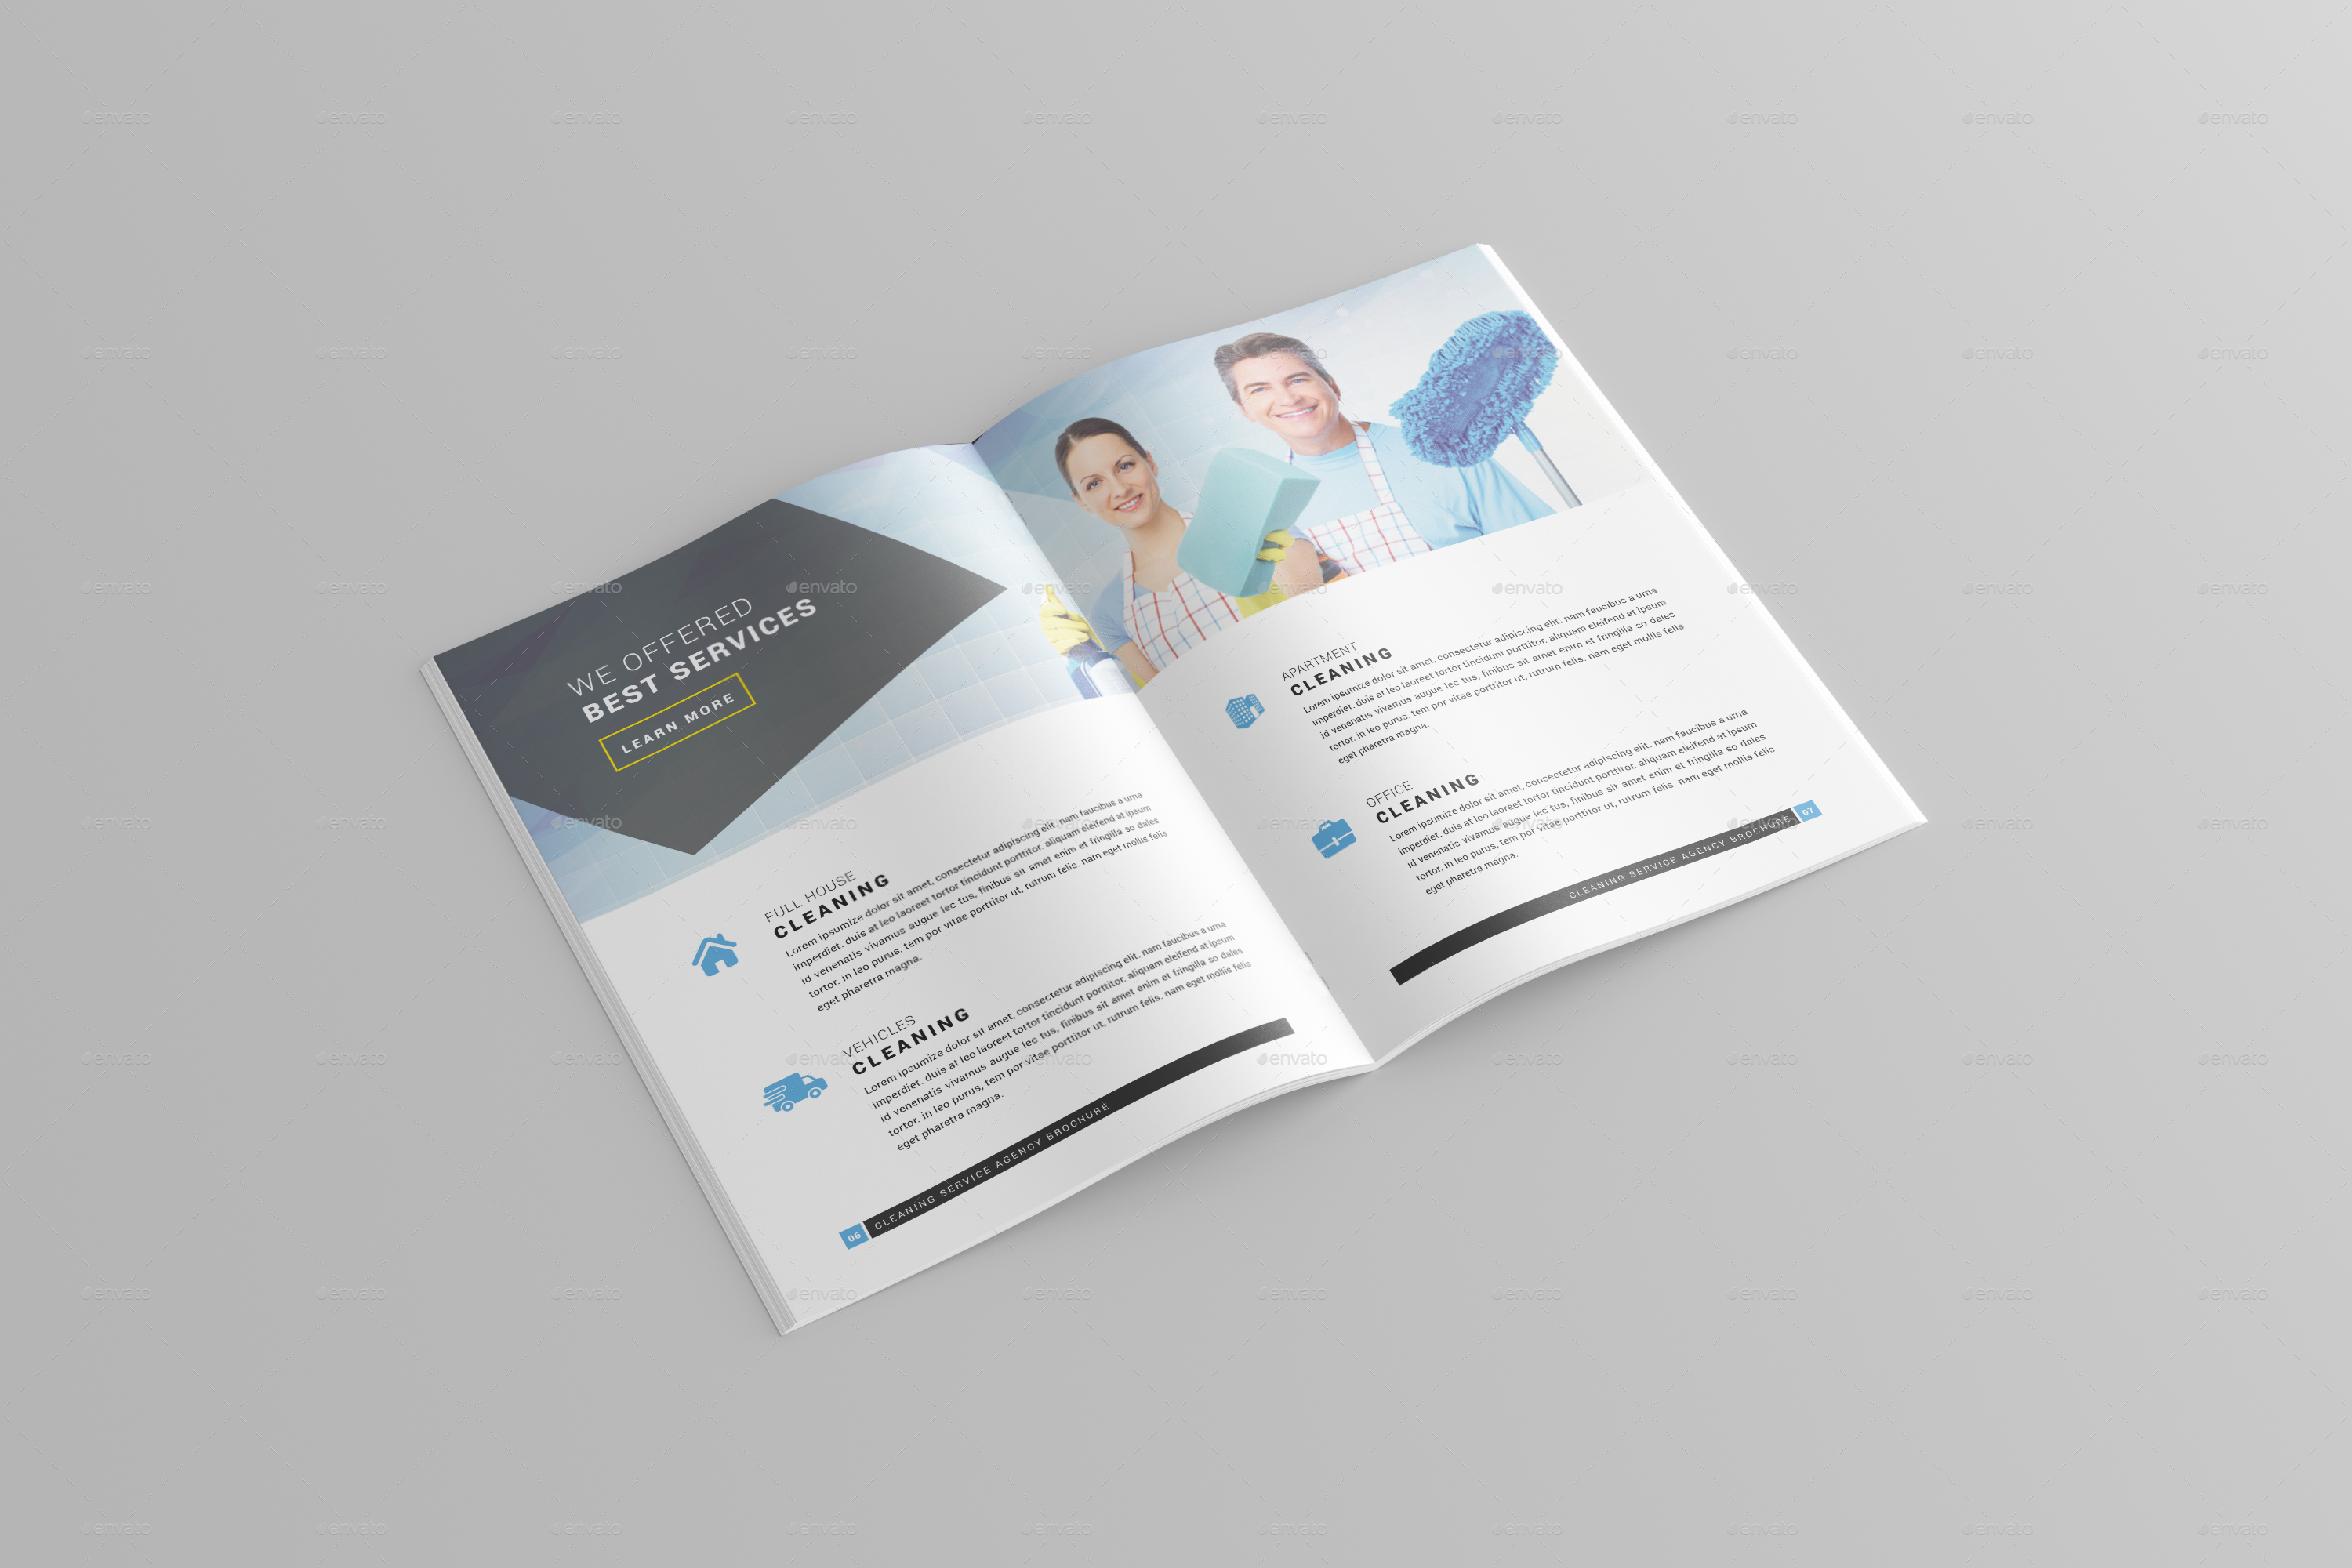 Cleaning Services Brochure Template By Onegraphics GraphicRiver - Cleaning service brochure templates